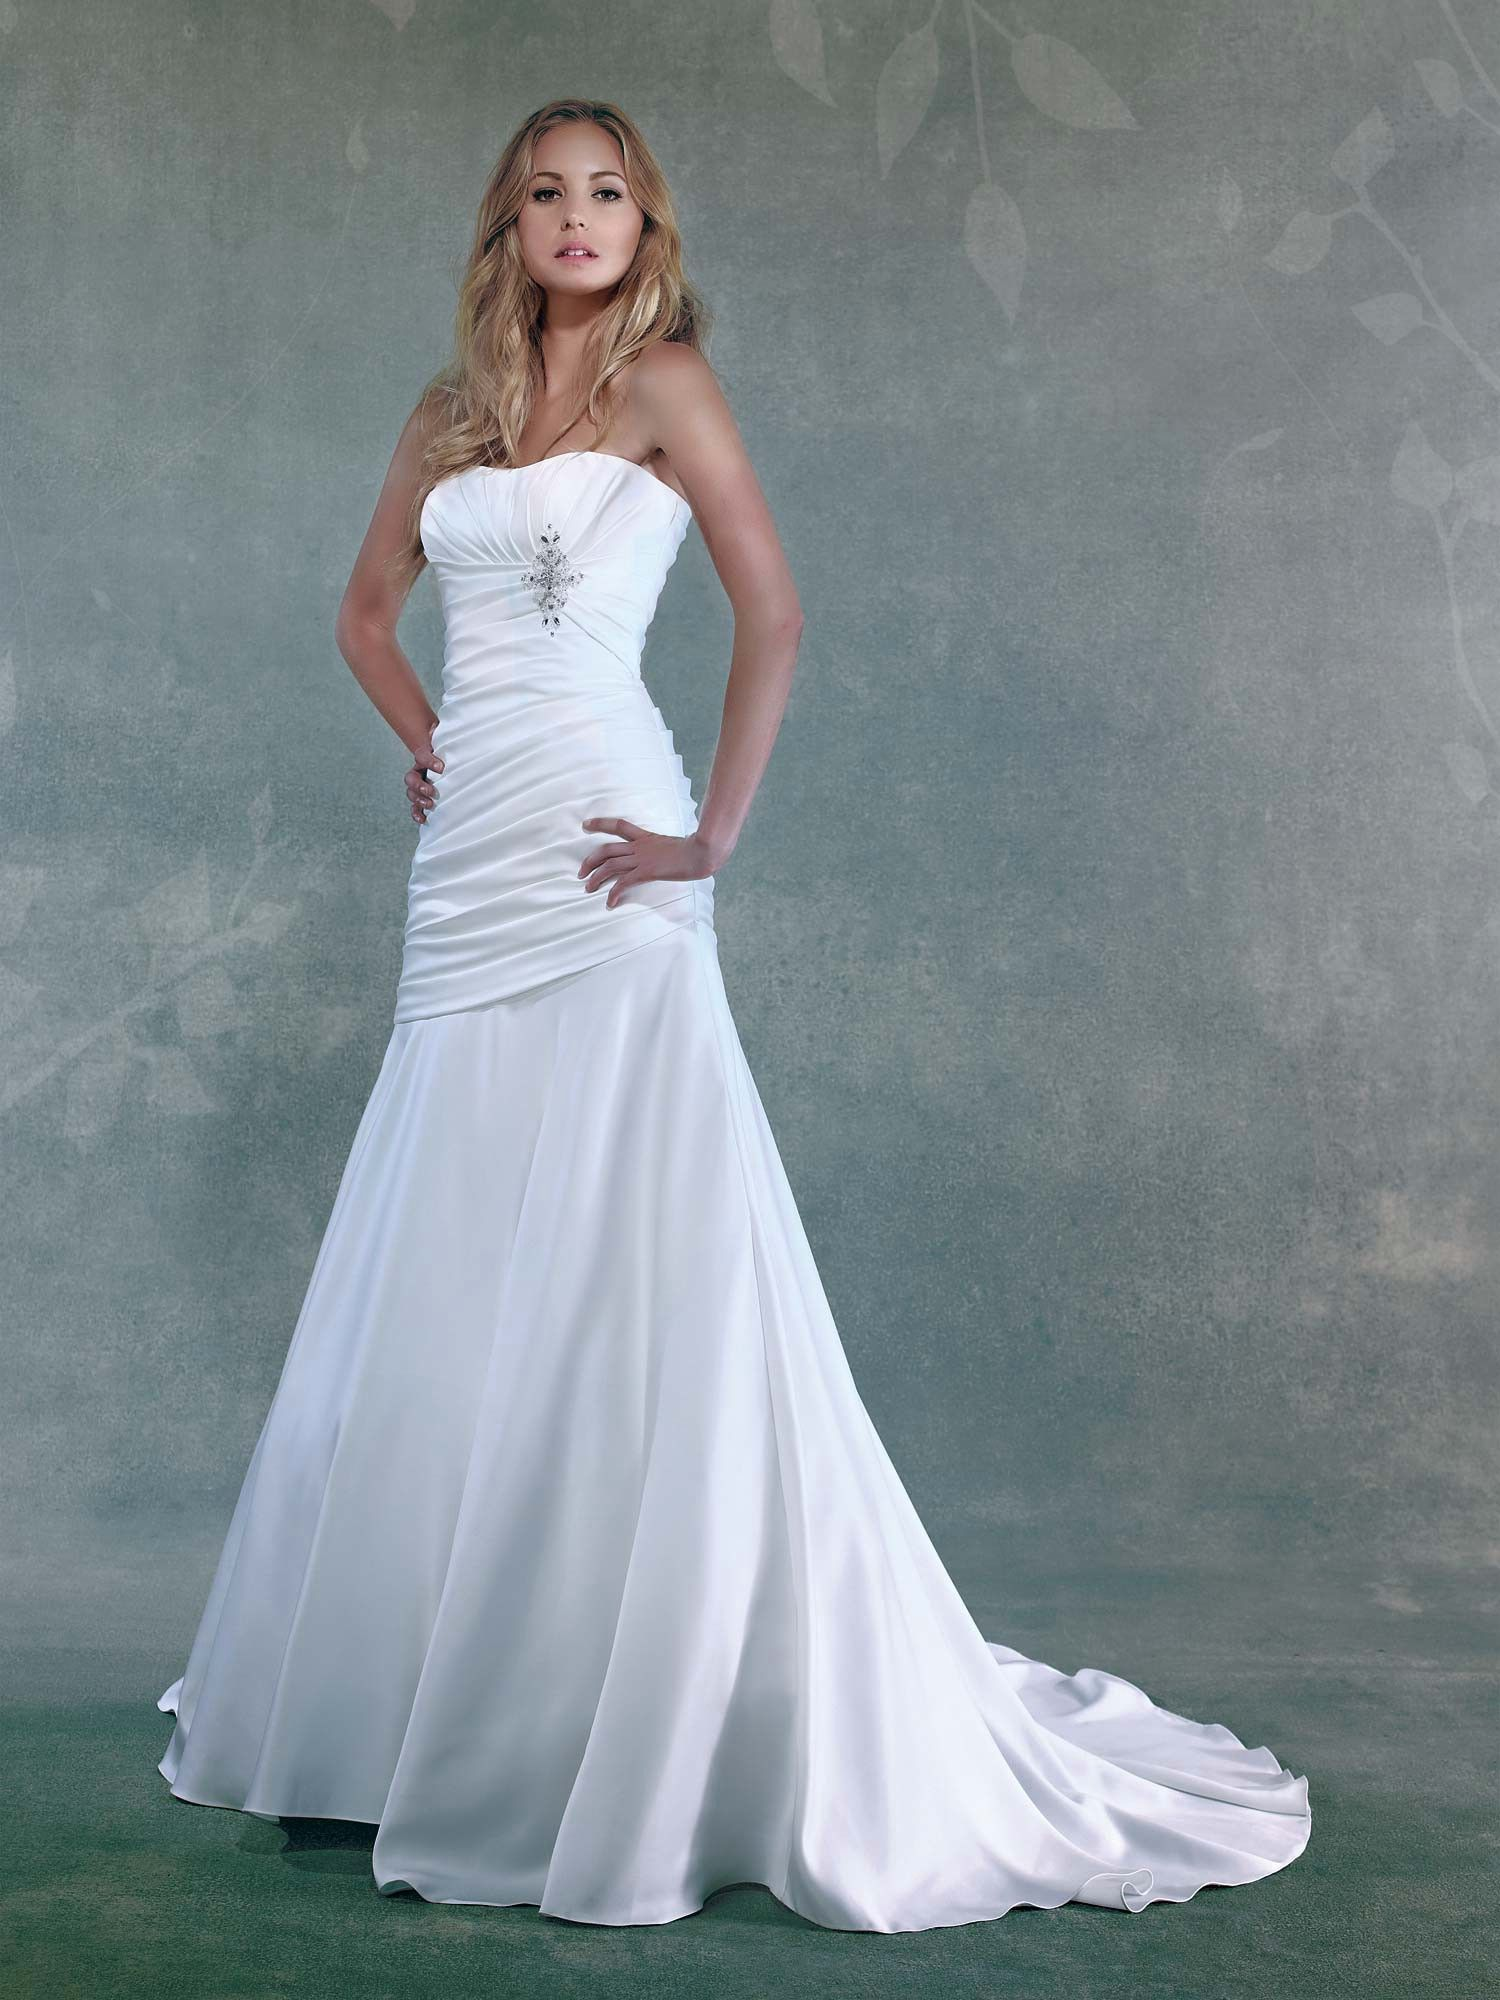 Wedding Dresses Under $300 - Quick Delivery - All dresses ship in 2 ...